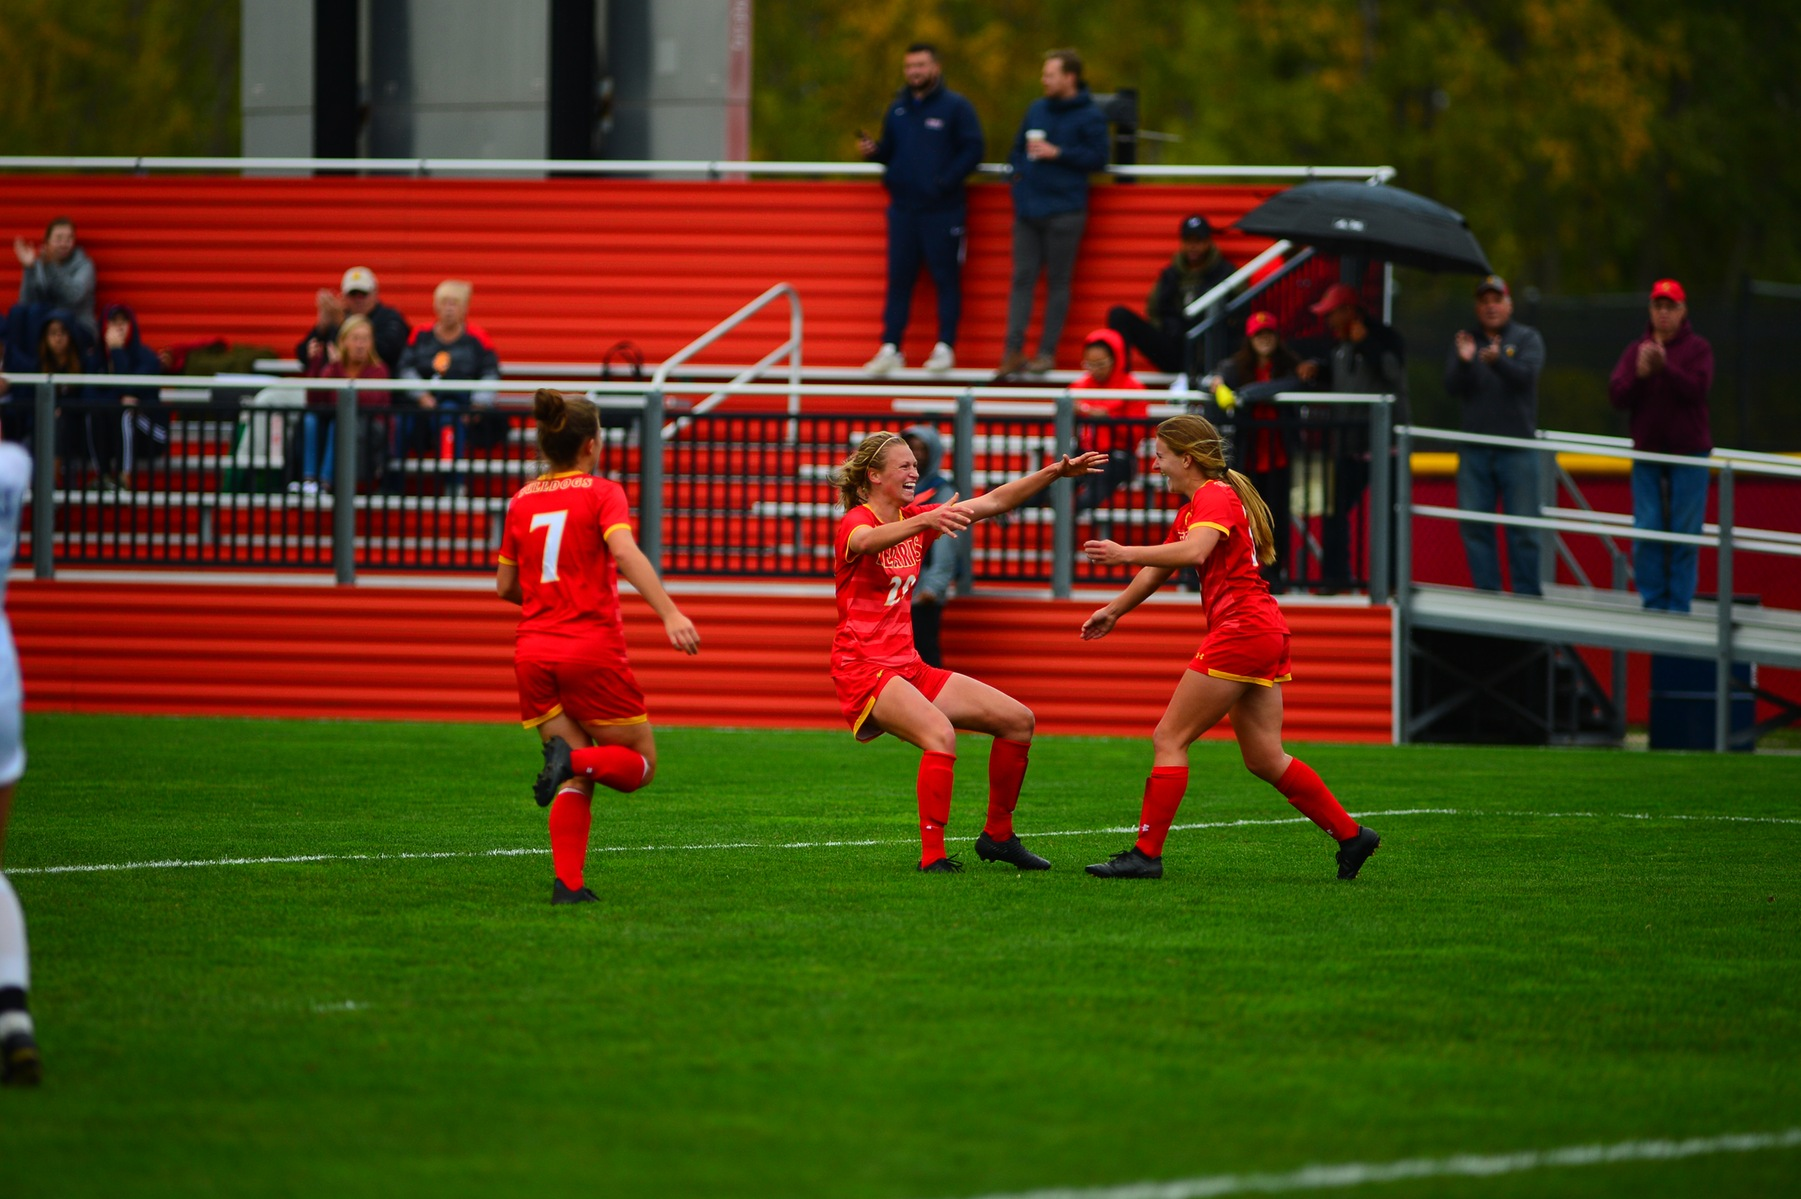 Bulldogs Shutout Cardinals To Stay Undefeated In GLIAC Play